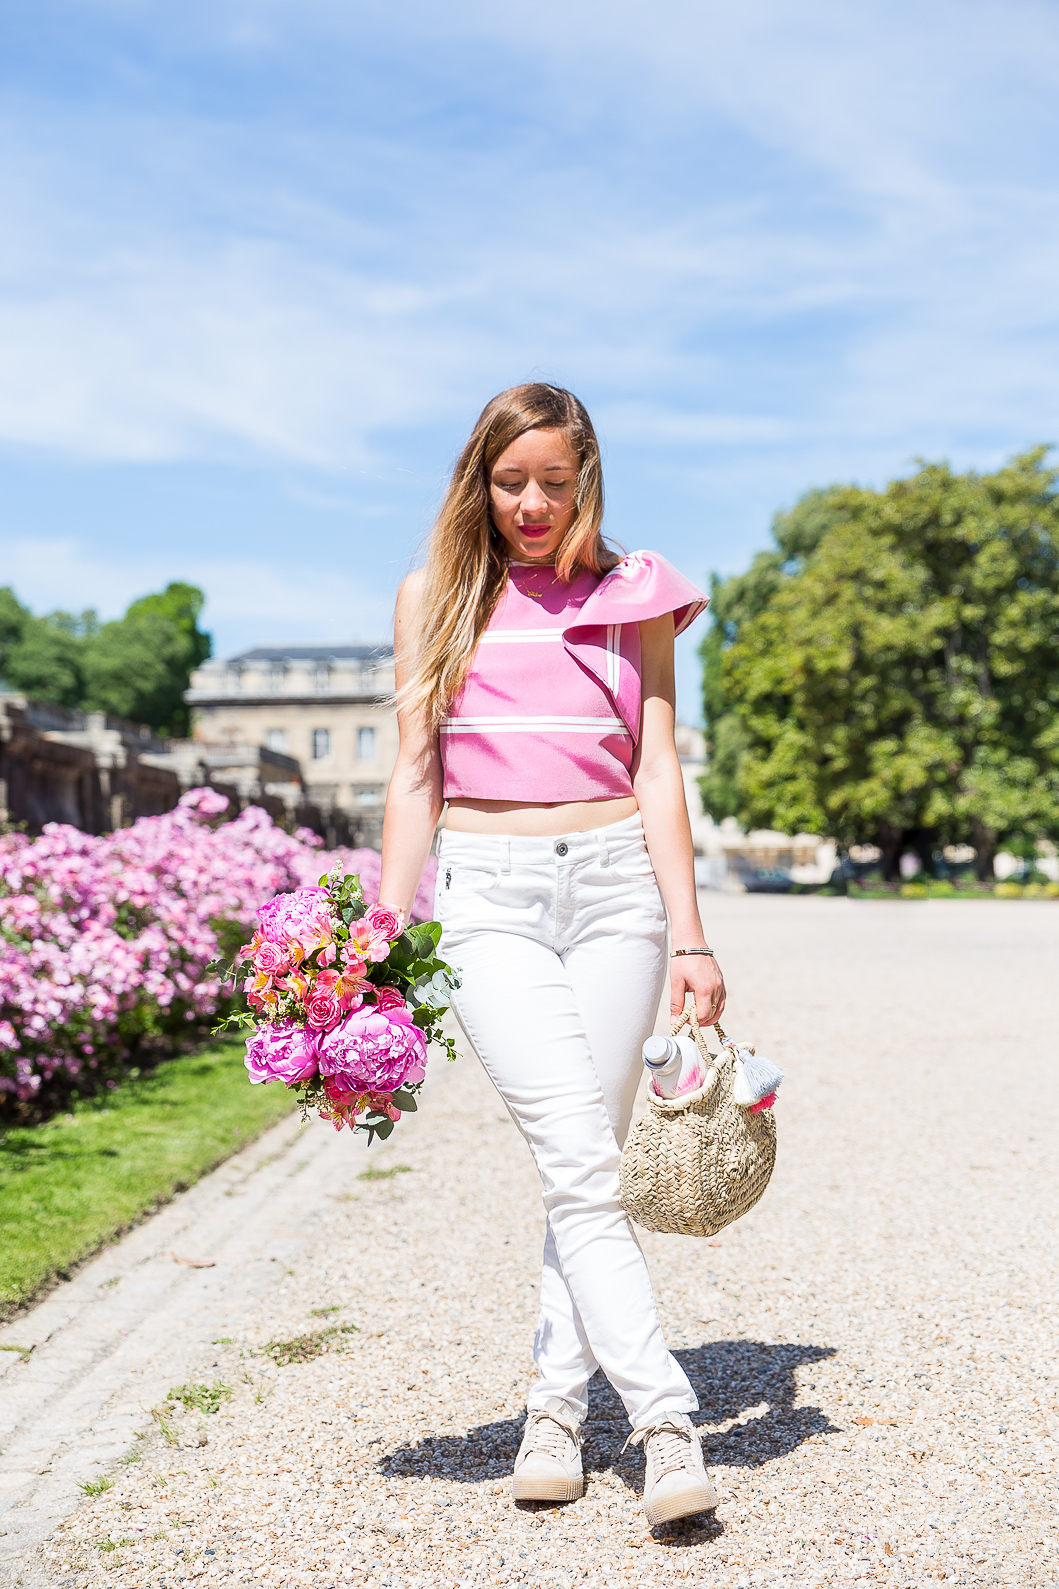 Tenue printemps rose blanche